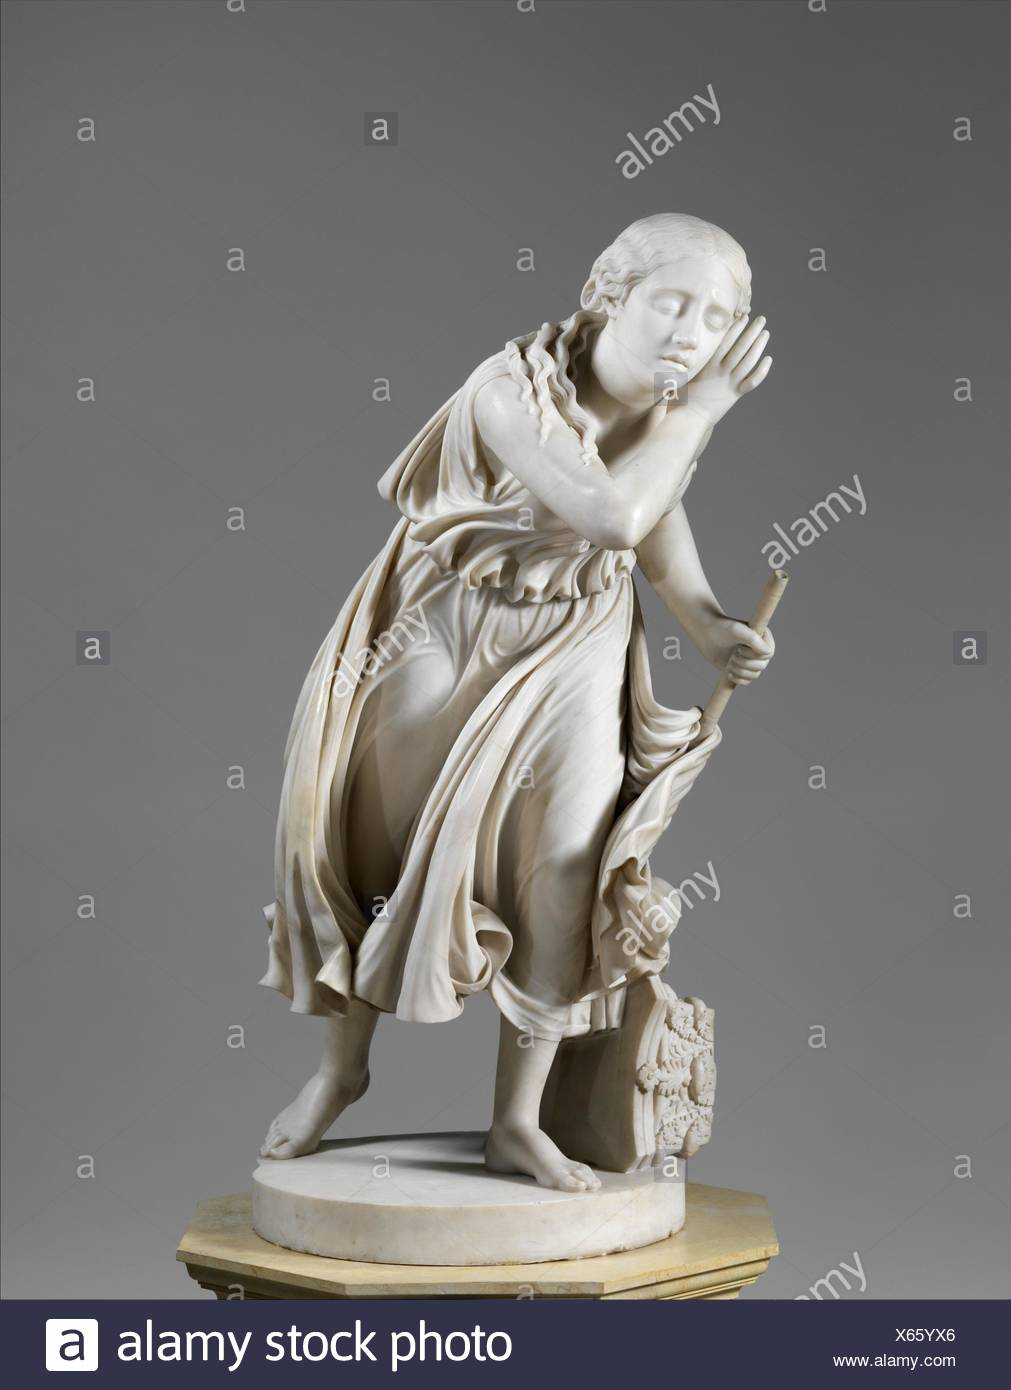 Nydia, the Blind Flower Girl of Pompeii. Artist: Randolph Rogers (American, Waterloo, New York 1825-1892 Rome); Date: 1853-54; carved 1859; Medium: Stock Photo